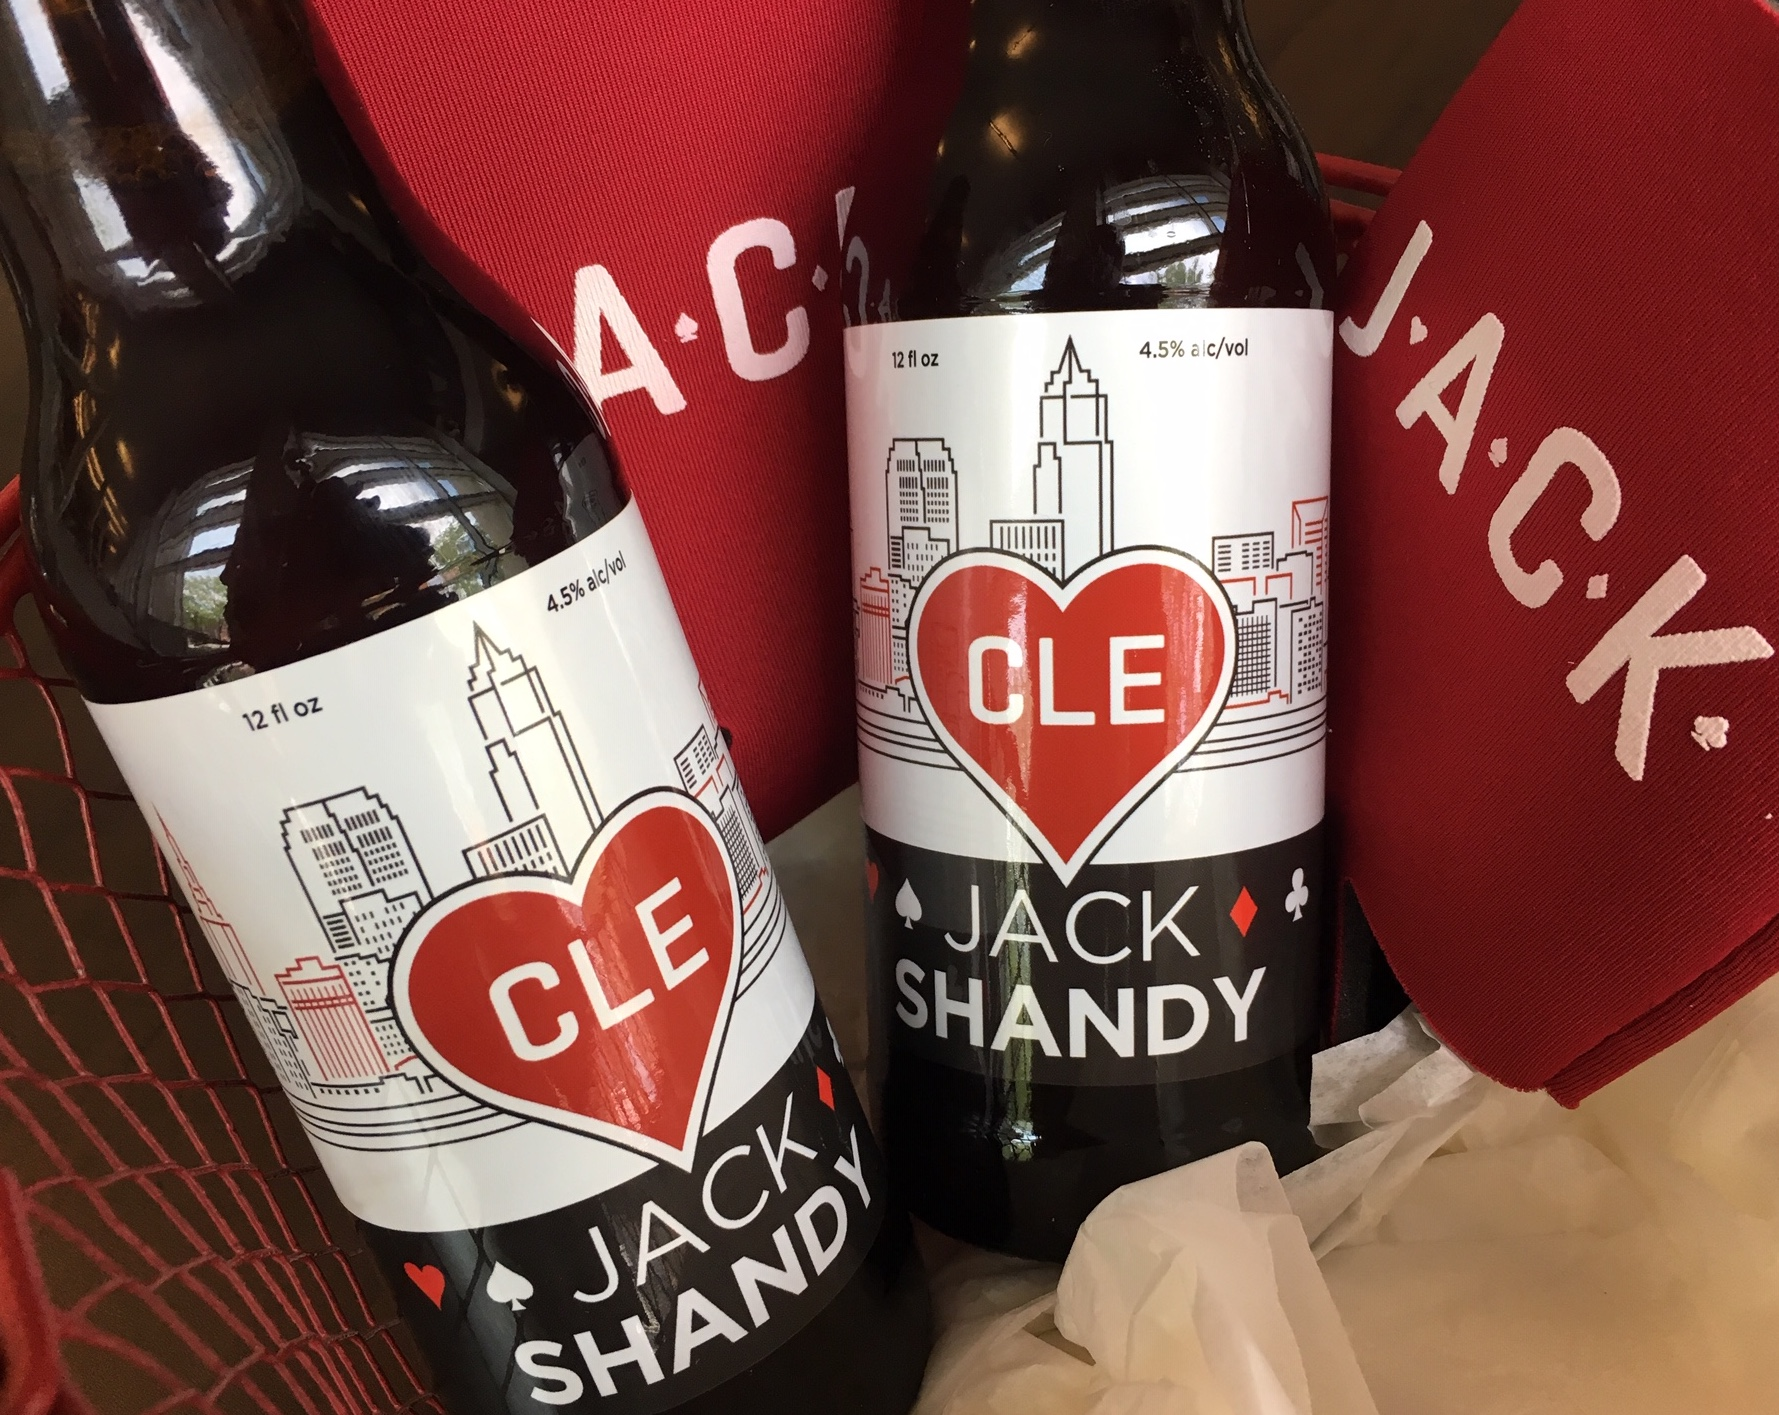 2020 Official Halloween Bar Crawl | Cle, Oh Vol.2, Flats At East Bank Apartments, October 20 Beer calendar: Jack Casino, Mucky Duck team up on beer, more